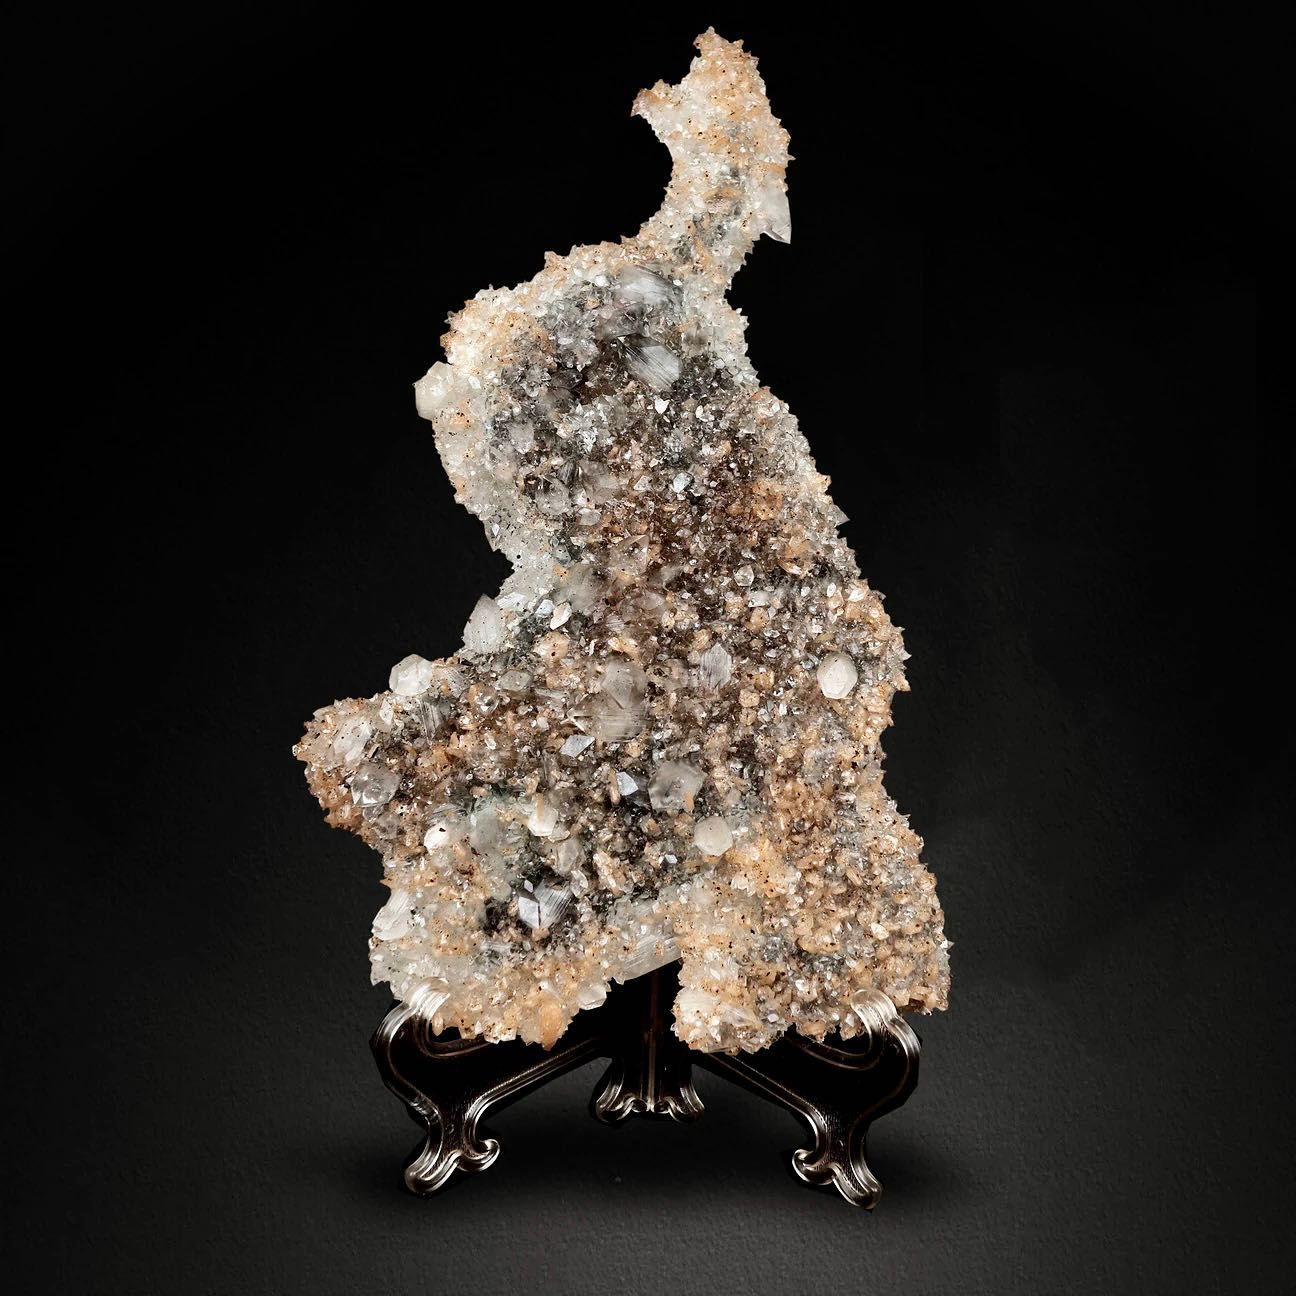 Apophyllite on Stilbite from India (specimen and photo by : Superbminerals)